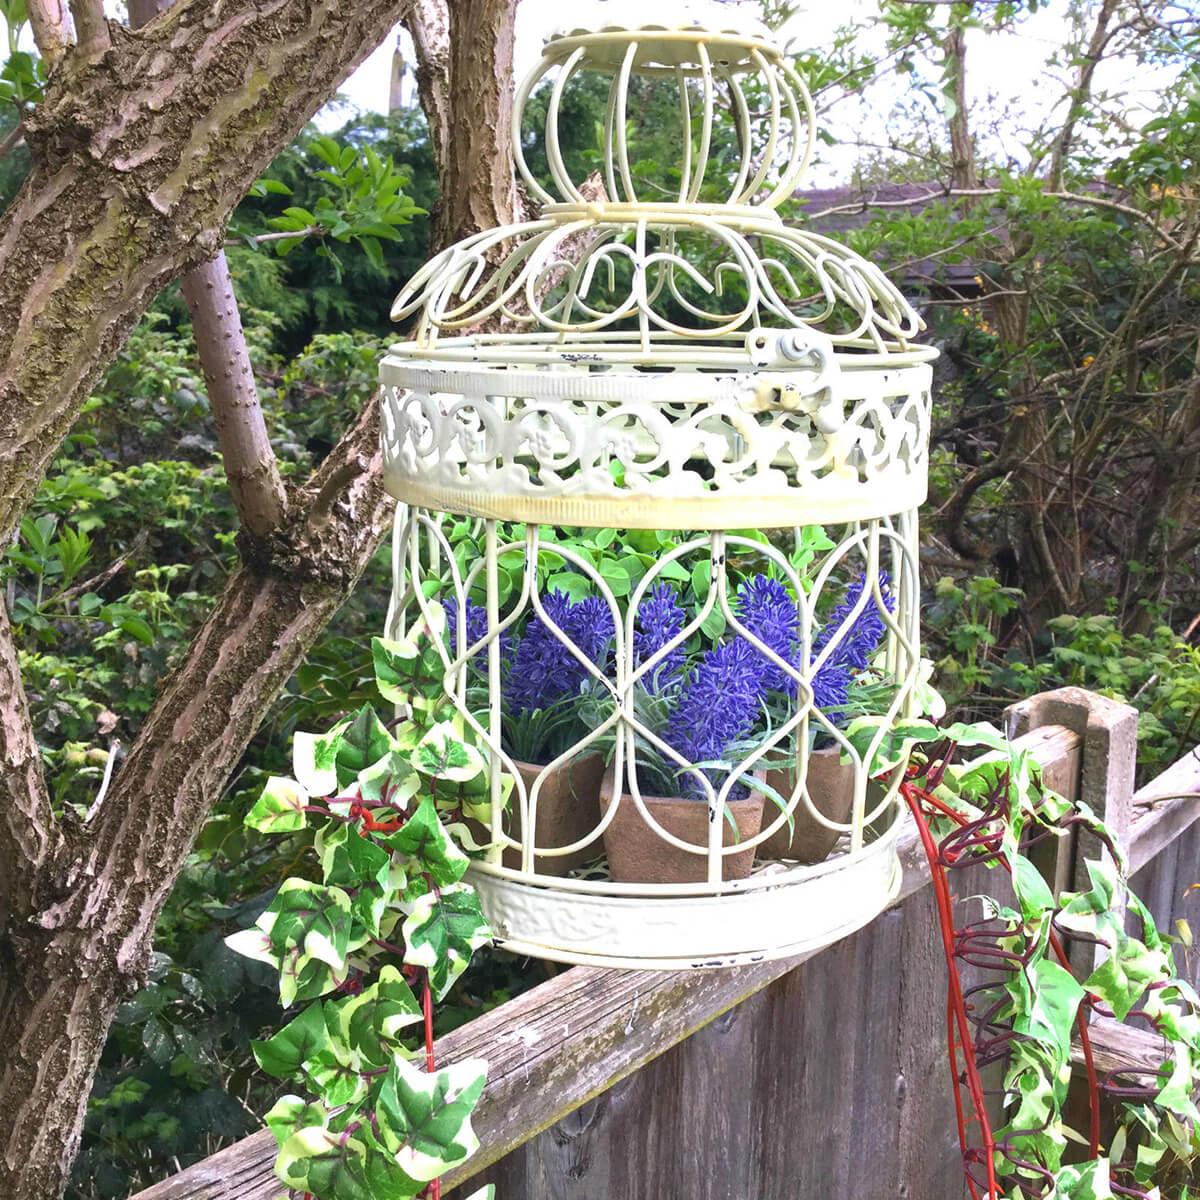 Hyacinths in a Birdcage with Vines